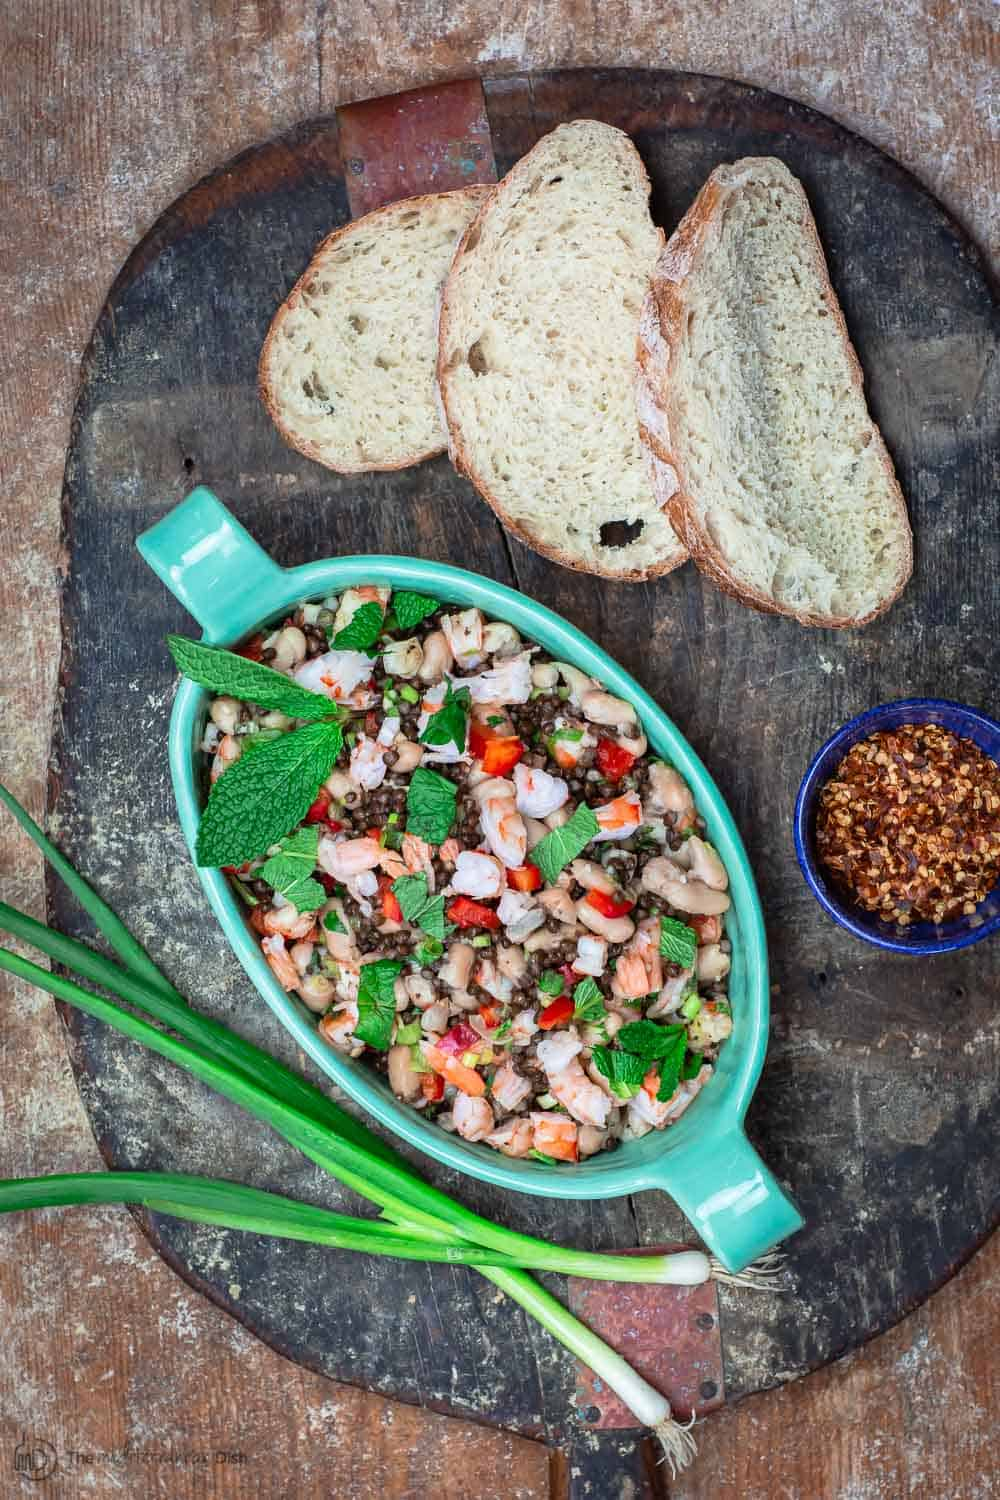 White bean salad in a serving bowl. Served with crusty bread, and a side of red pepper flakes